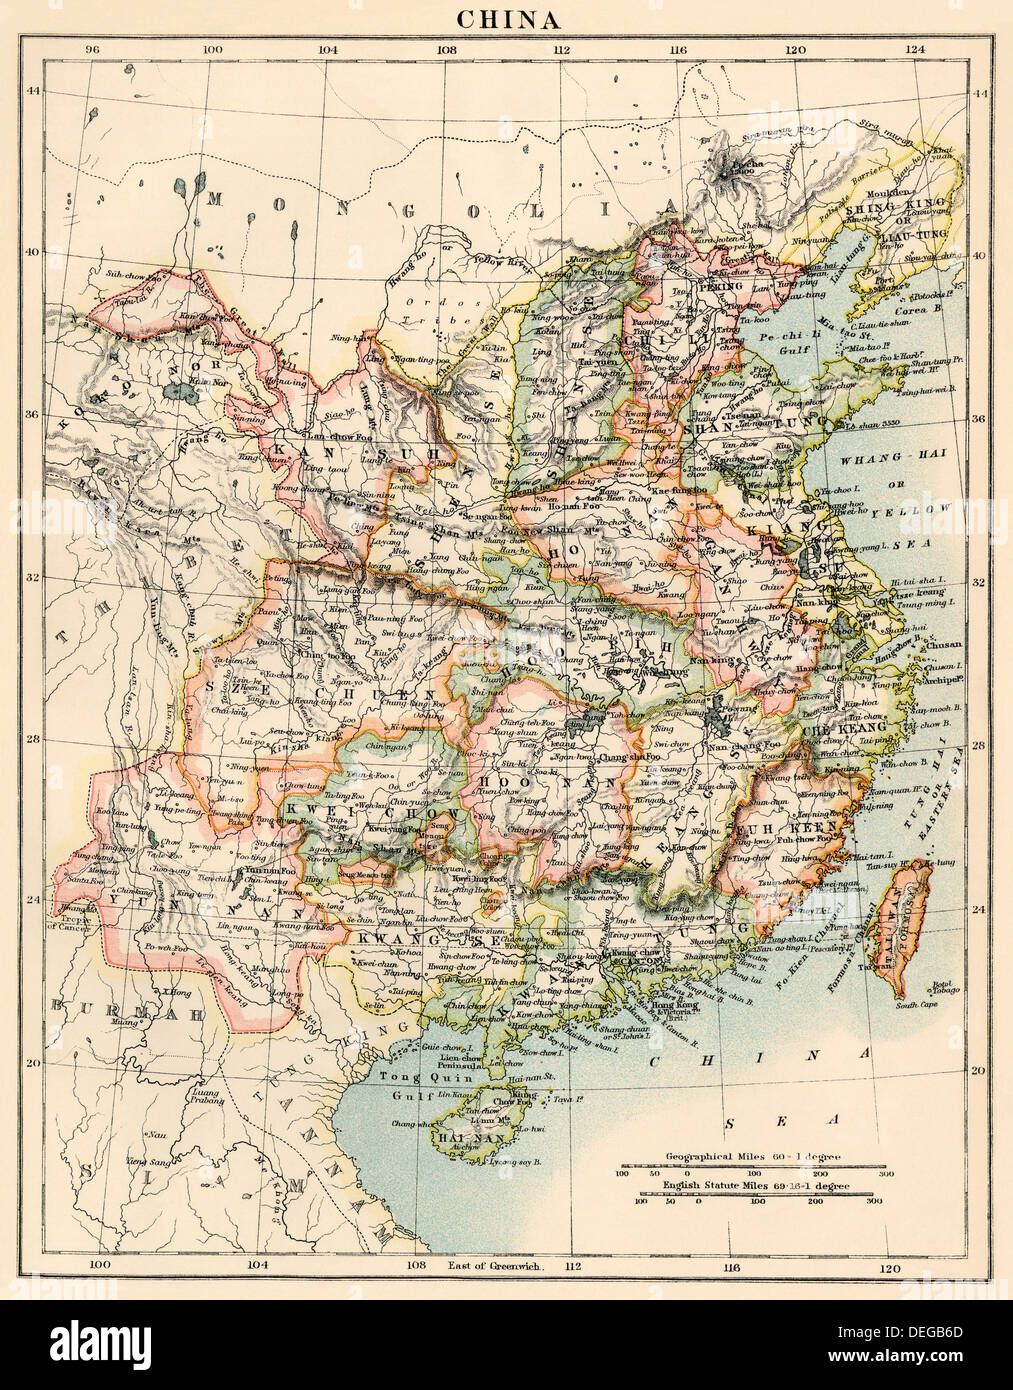 Map of China, 1870s. Color lithograph - Stock Image